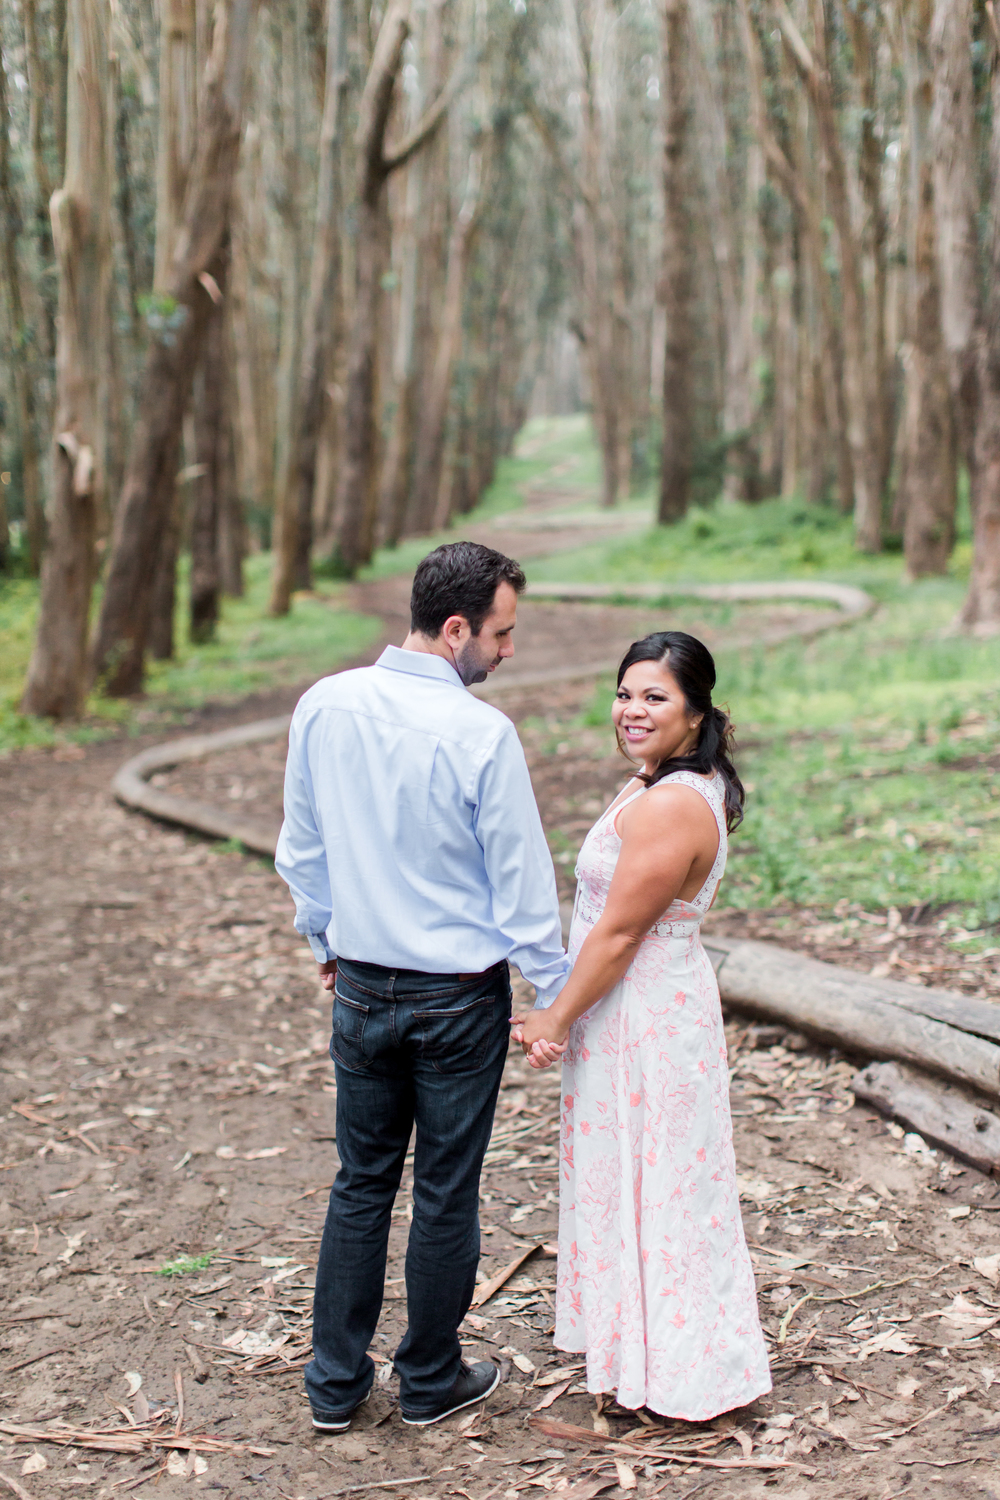 lovers-lane-san-francisco-engagement-photography.jpg